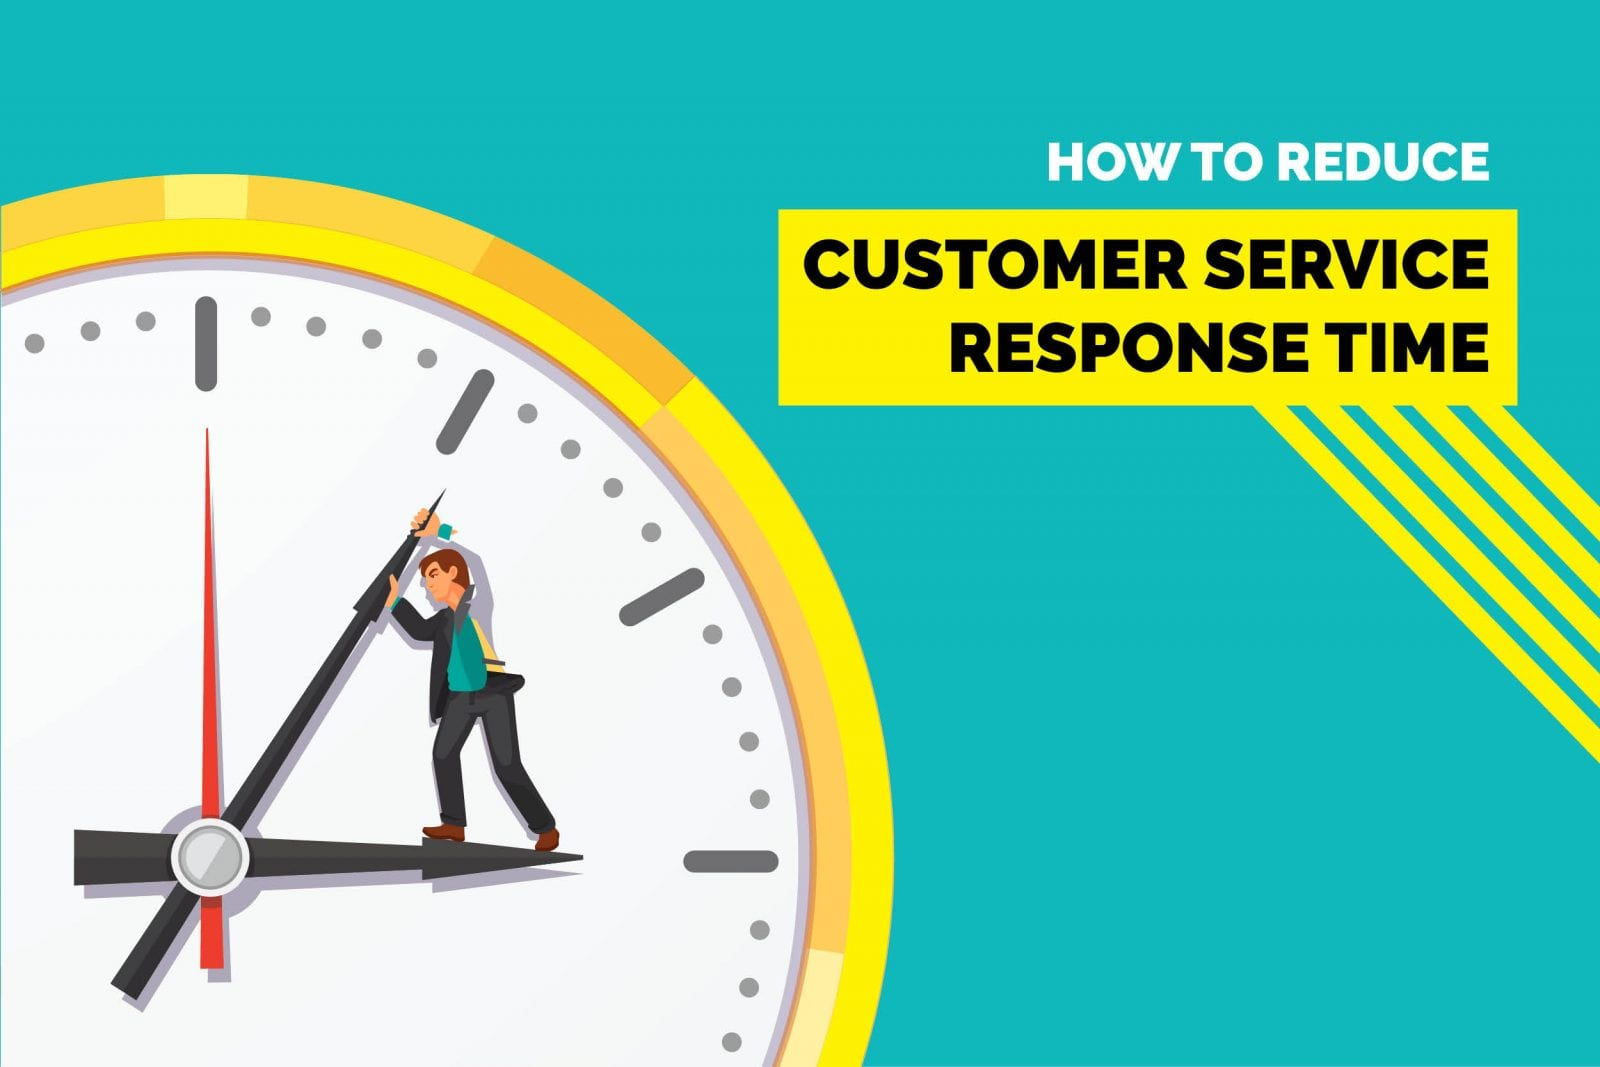 Reduce customer service response time